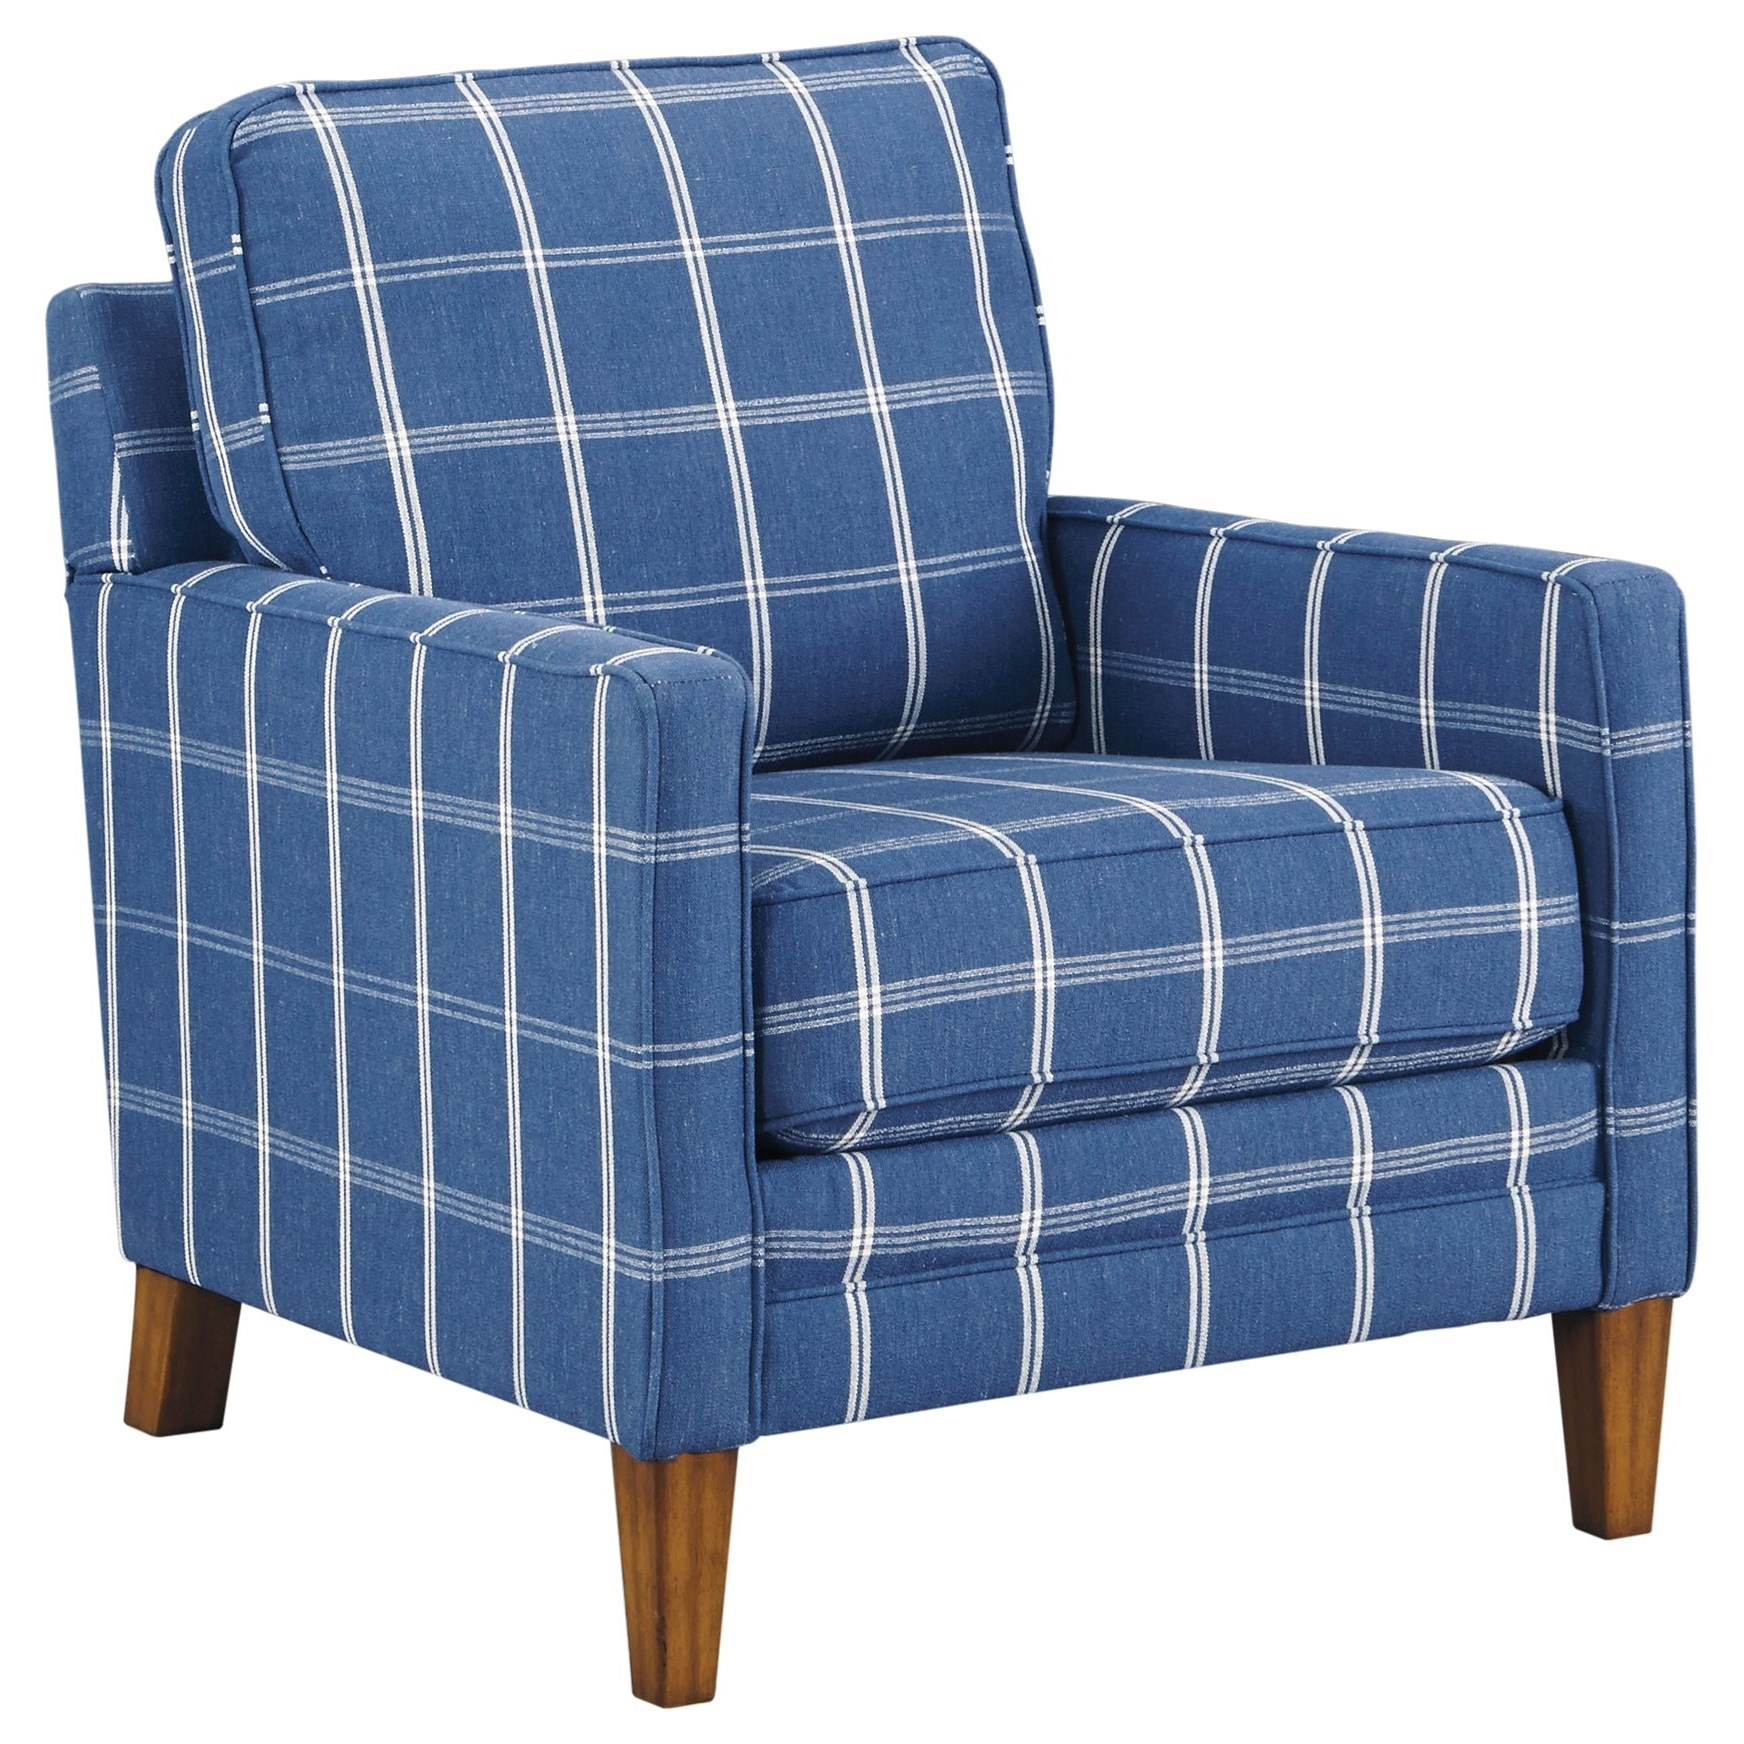 Benchcraft by Ashley Adderbury Accent Chair - Item Number: 1440321